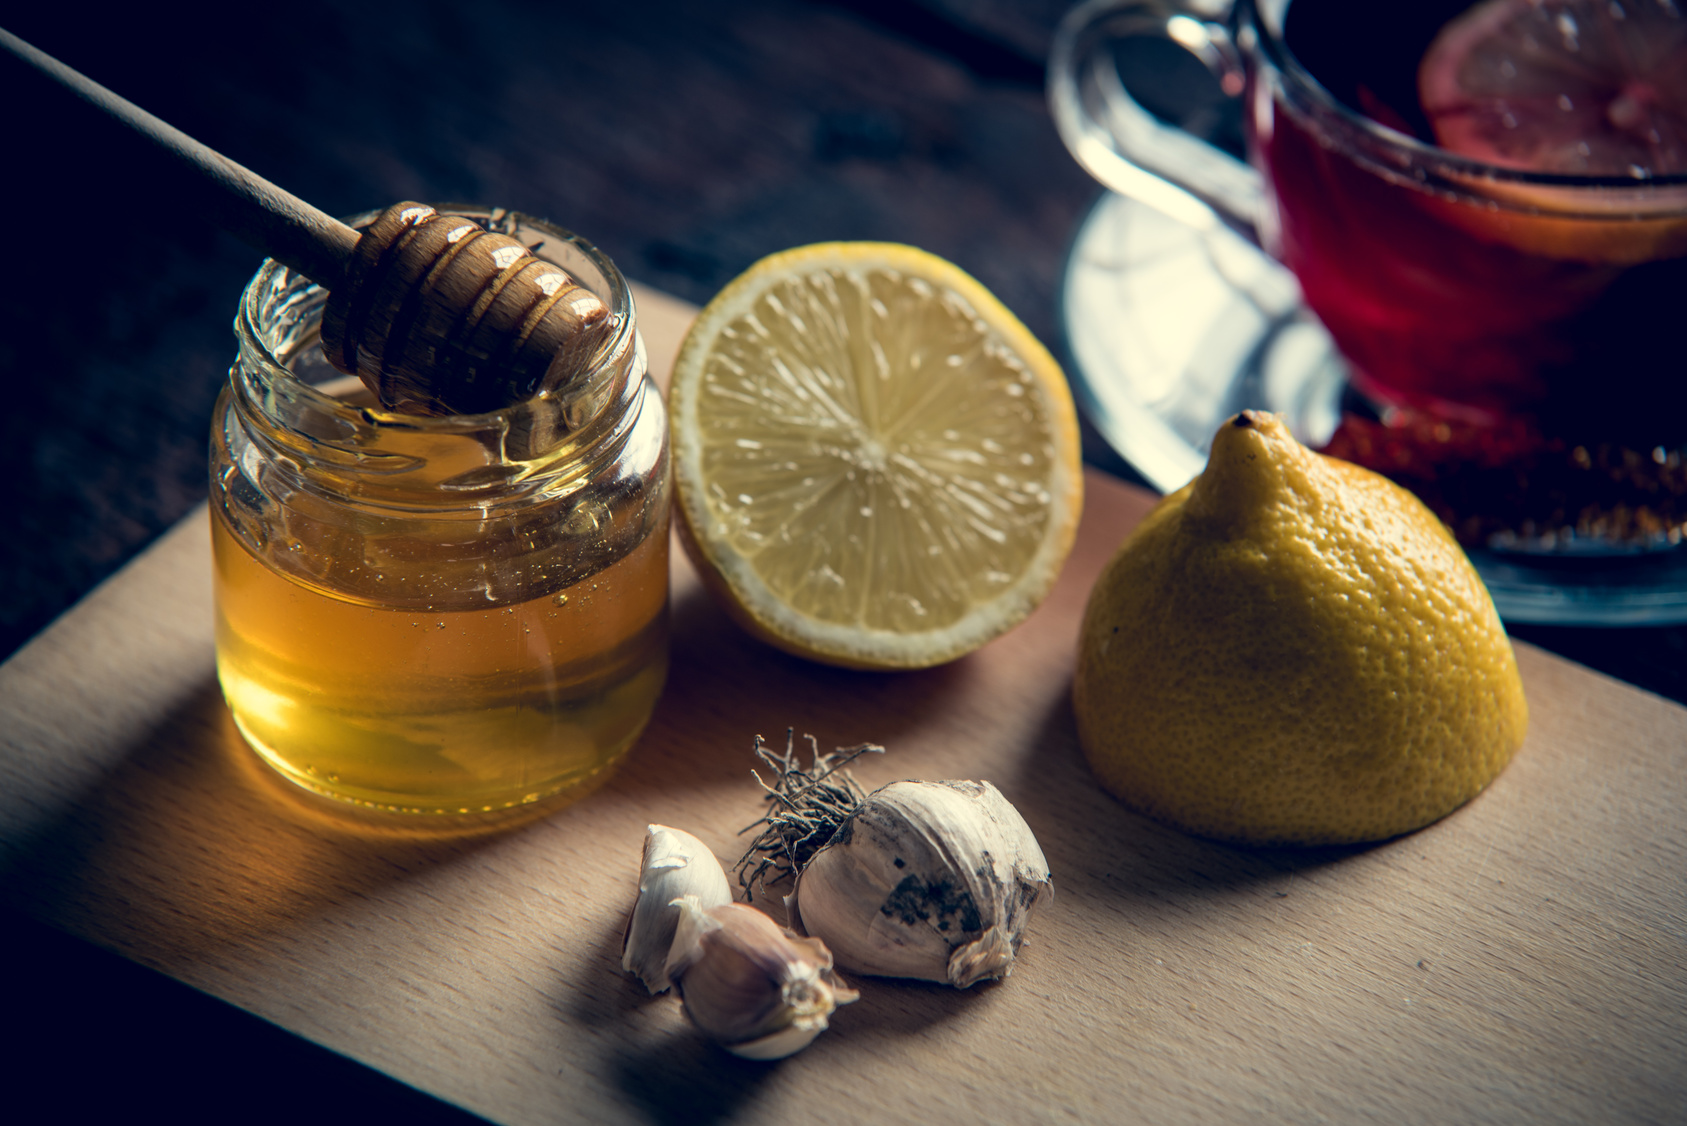 Natural medicines against flue and cold. Honey, lemon and garlic. Health and alternative medicine concept.